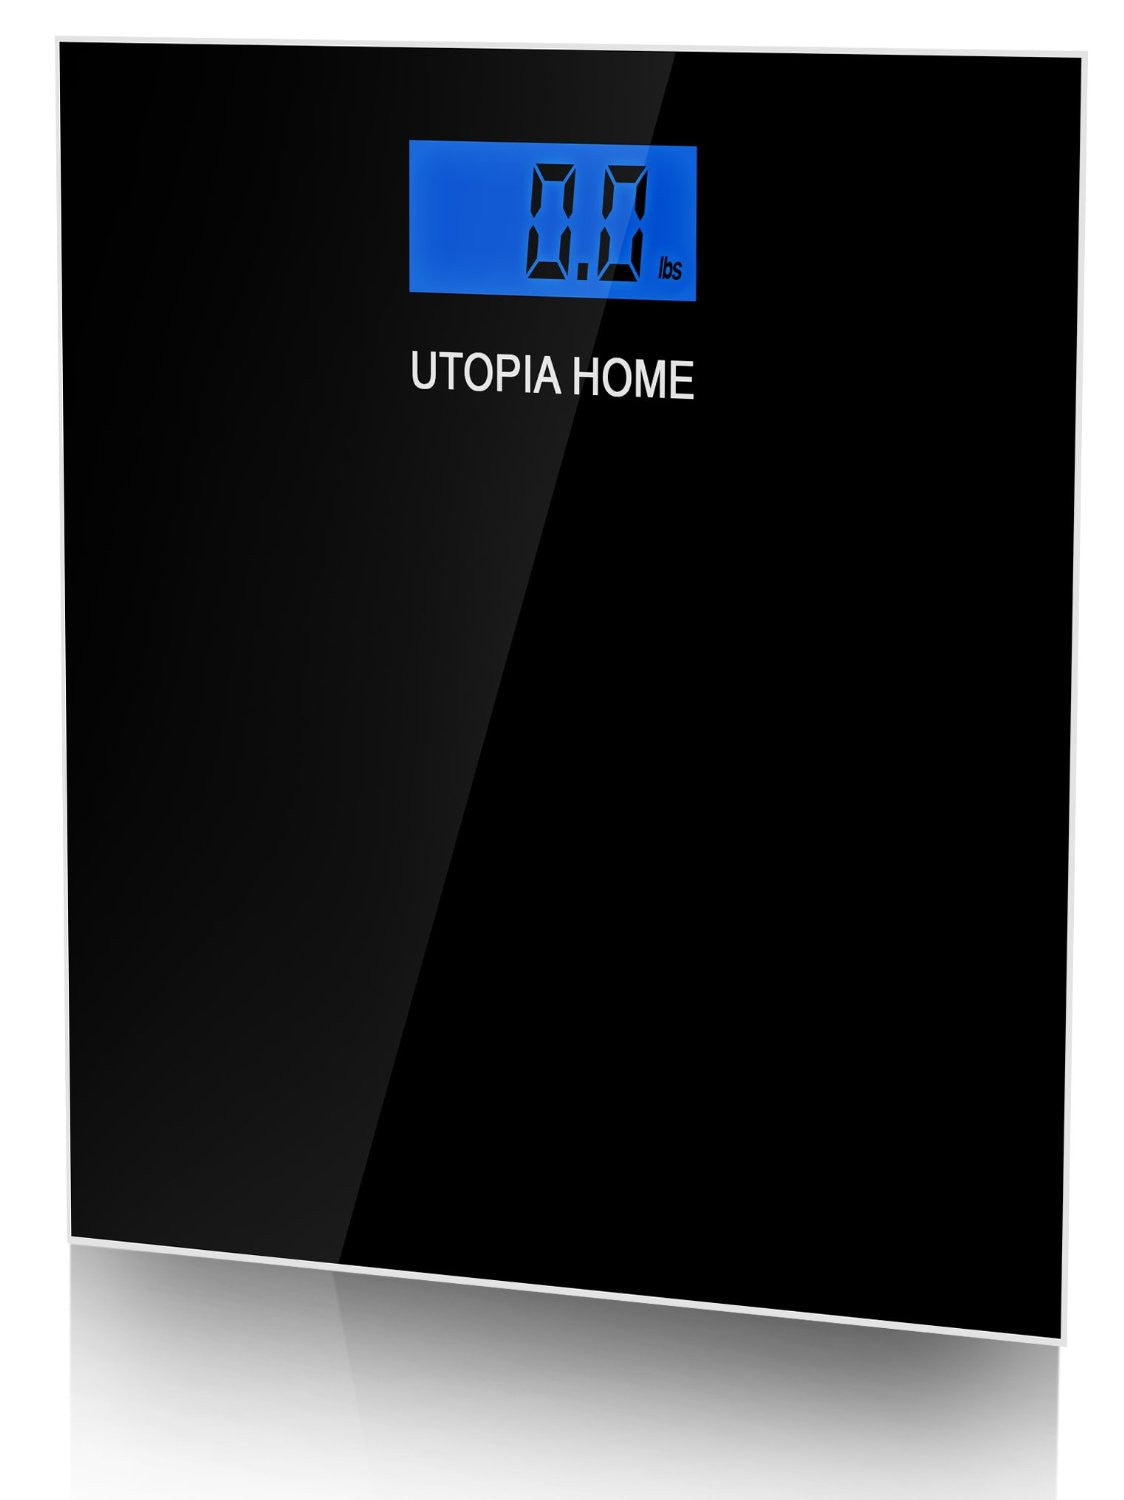 Digital Glass Bathroom Scale - Black